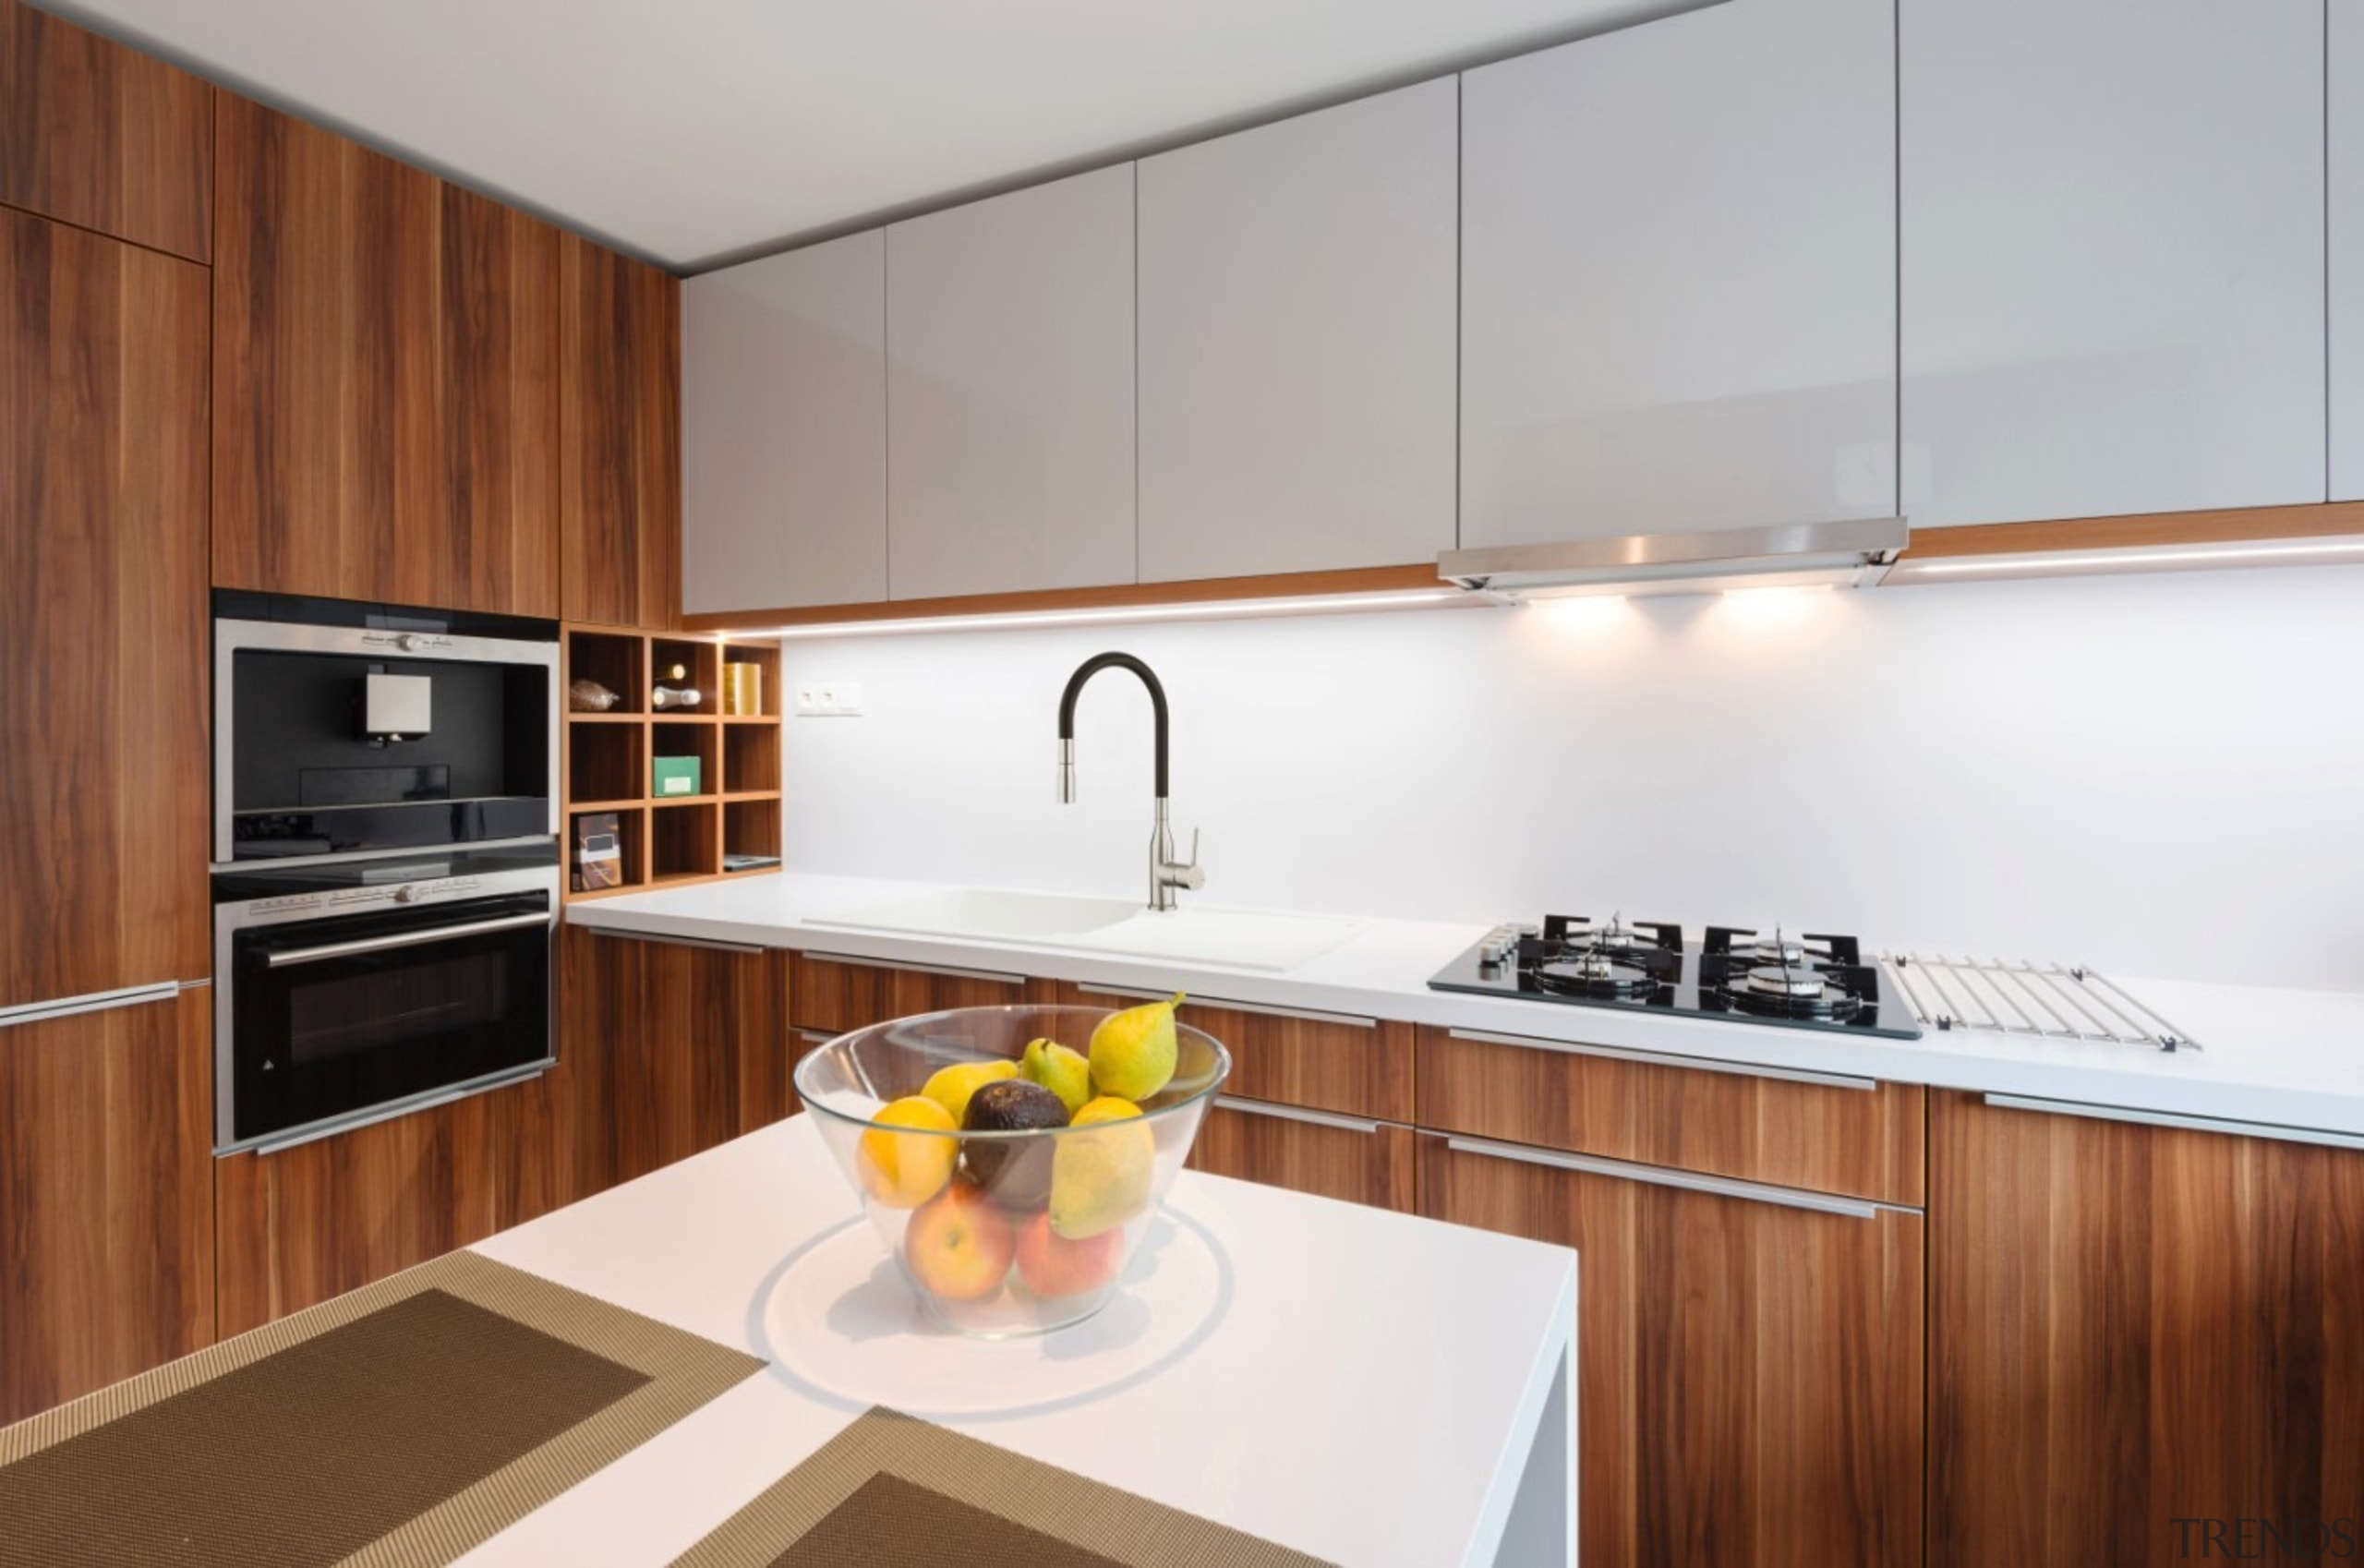 Foreno 5 - cabinetry | countertop | cuisine cabinetry, countertop, cuisine classique, interior design, kitchen, property, real estate, room, white, brown